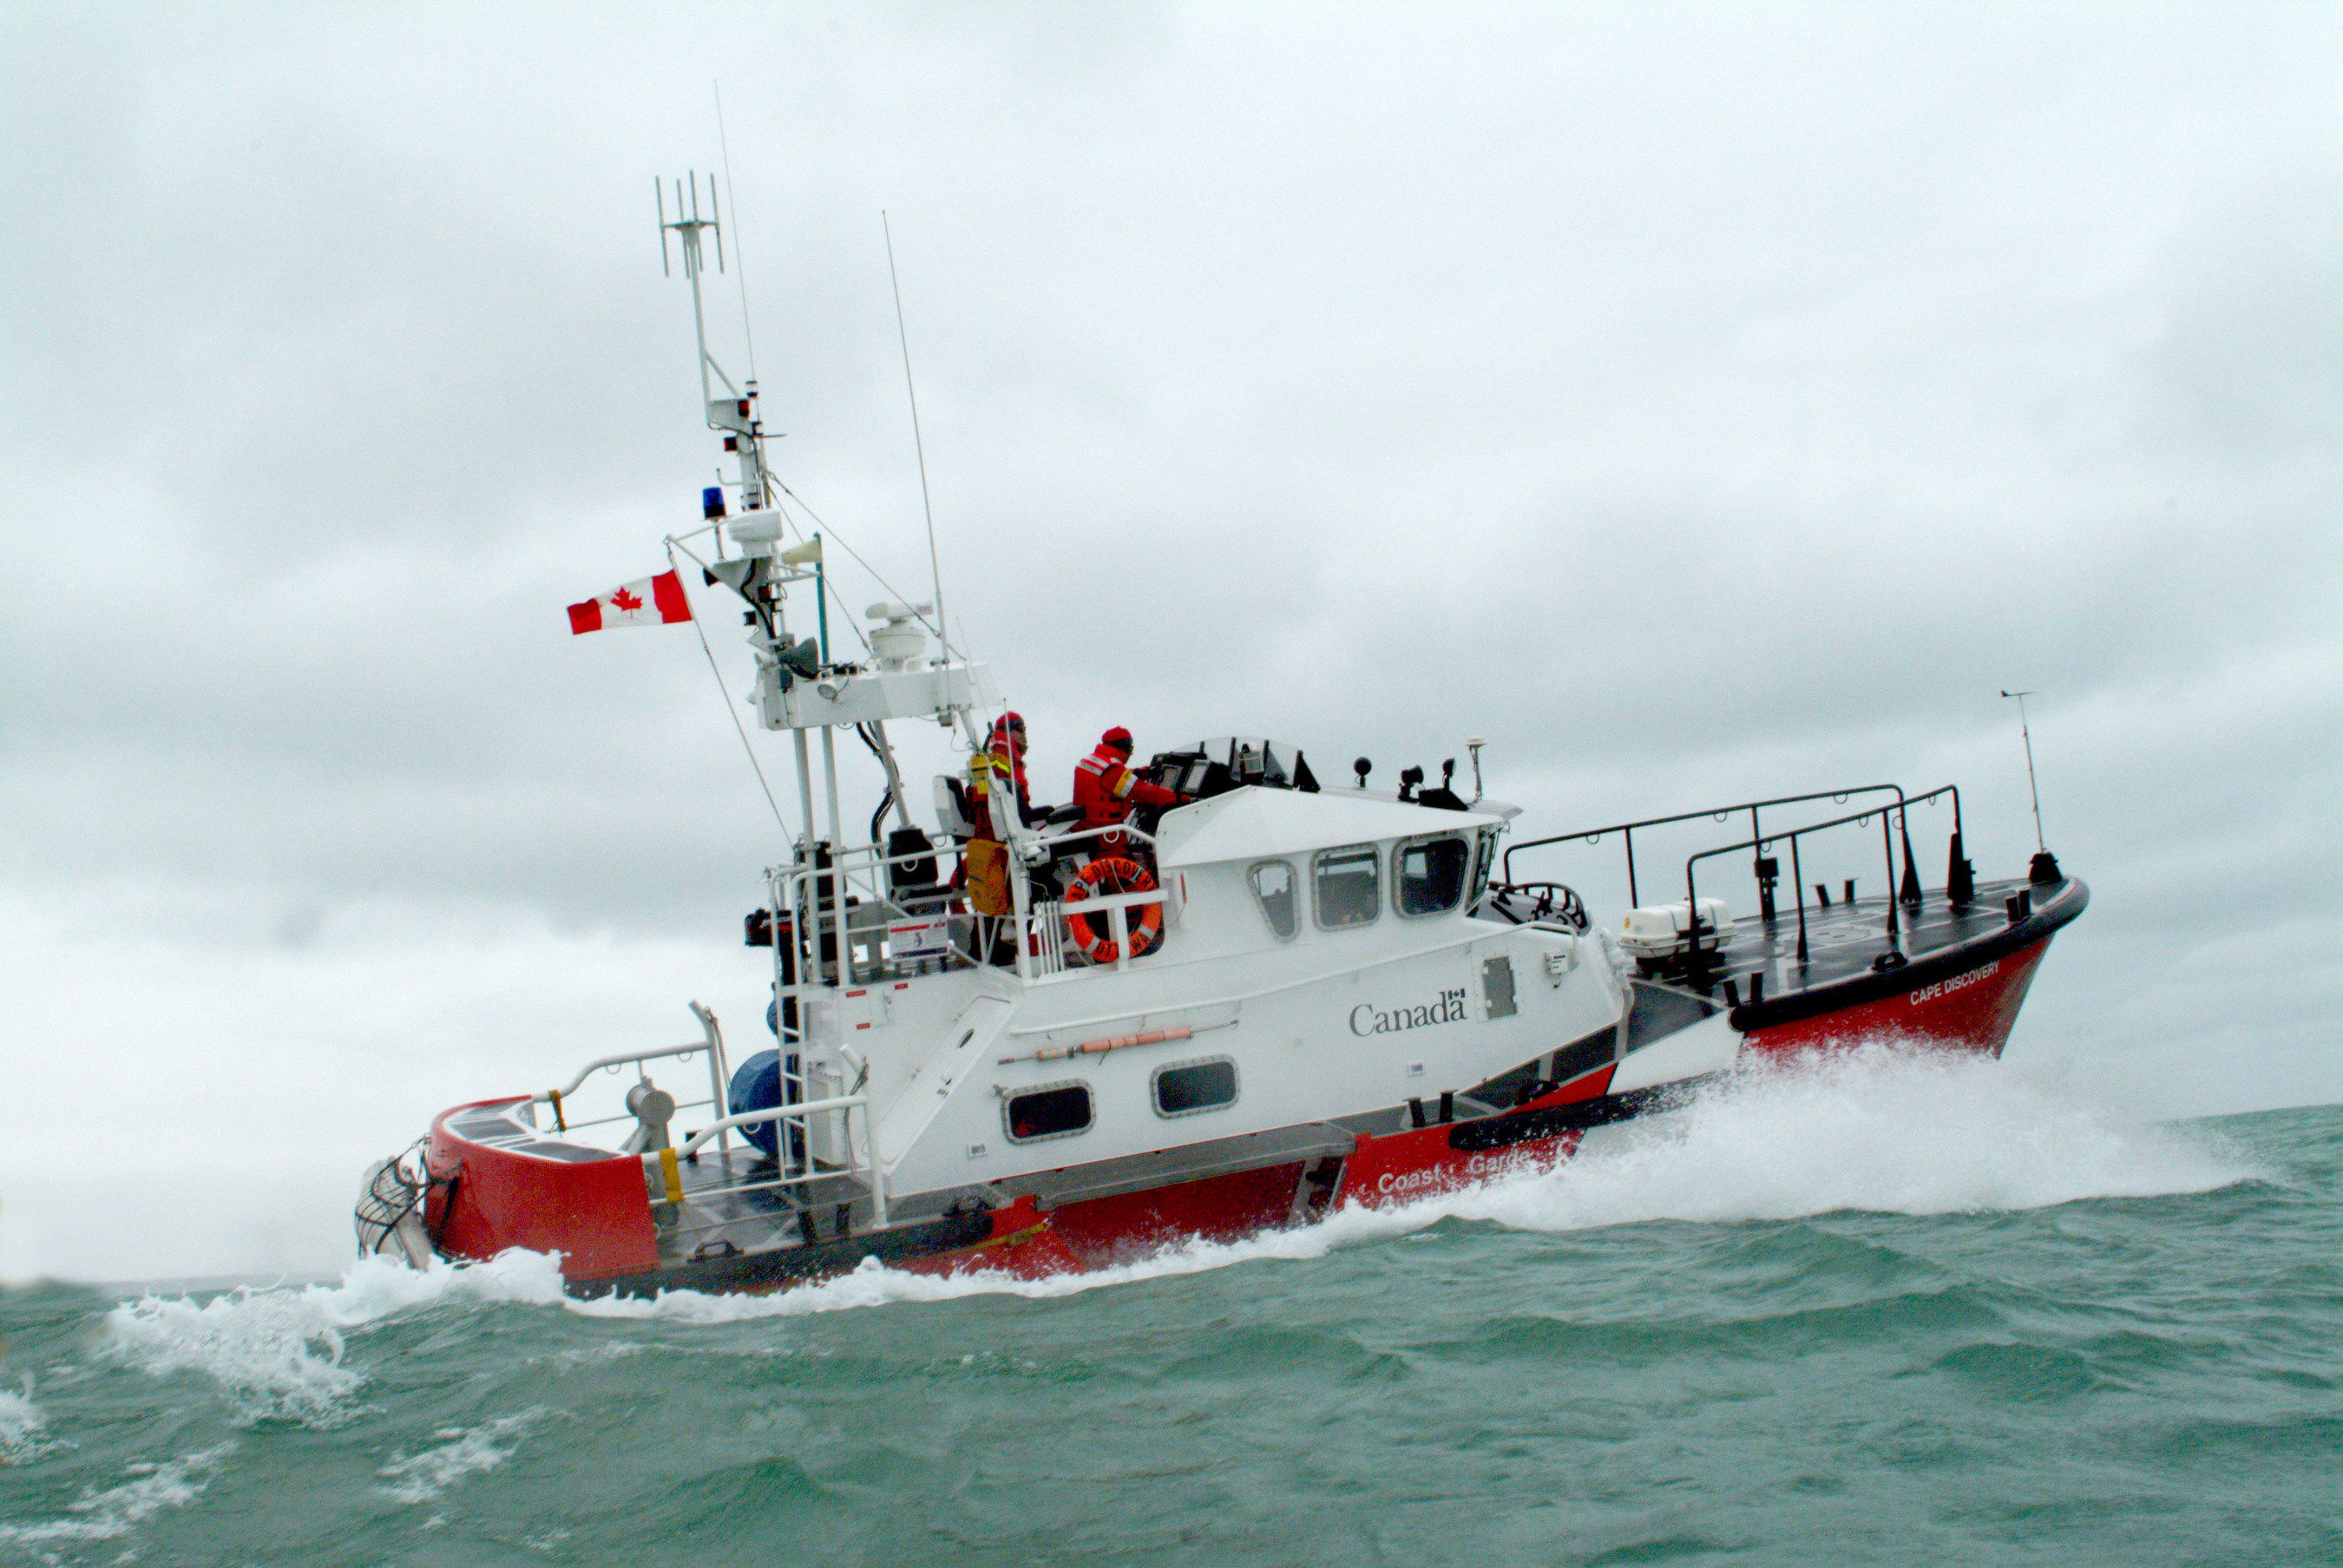 Canadian Coast Guard Kicks Off the 2021 Boating Season on Georgian Bay